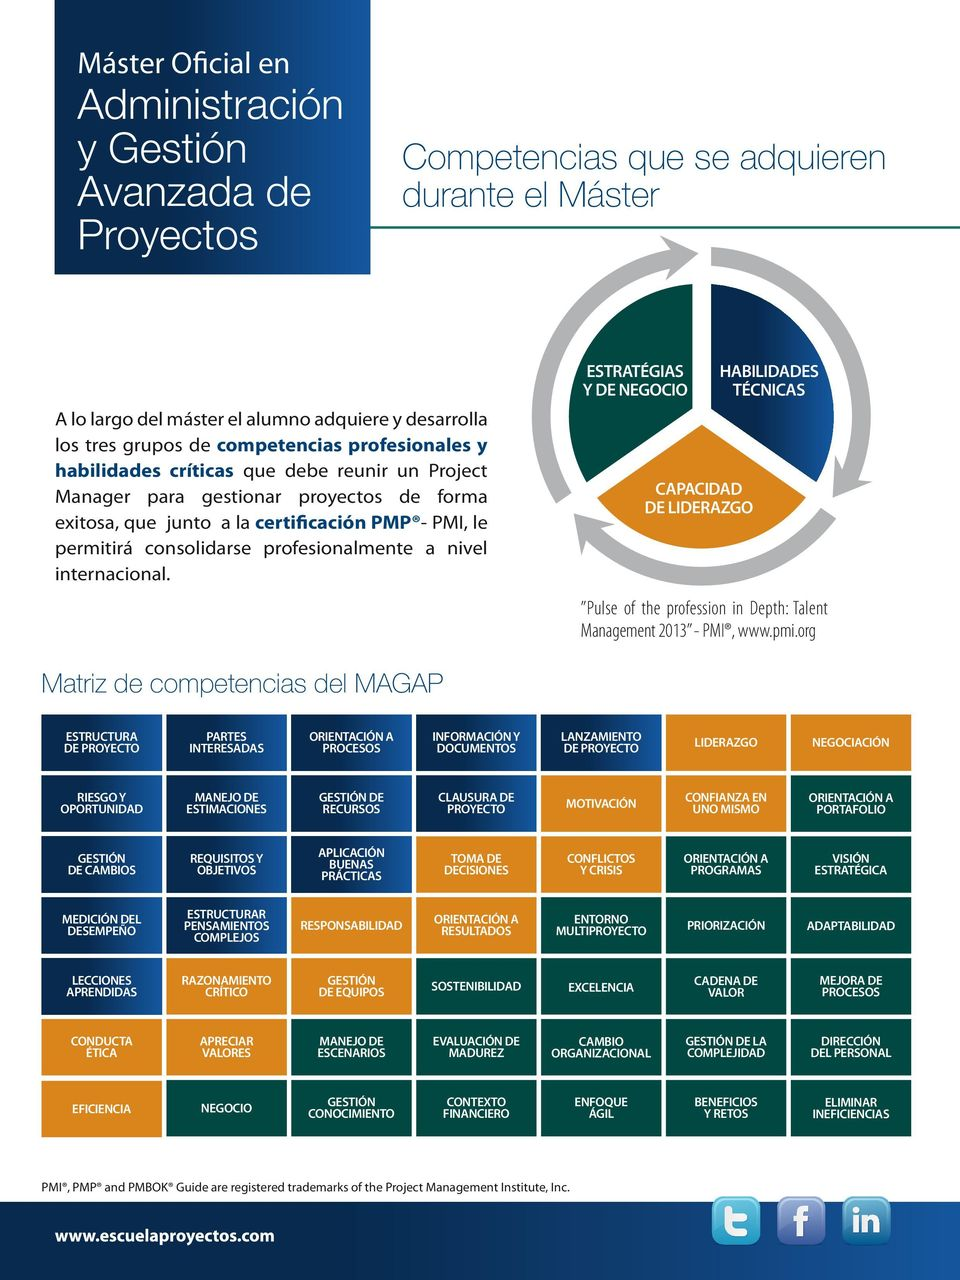 nivel internacional. ESTRATÉGIAS Y DE NEGOCIO CAPACIDAD DE LIDERAZGO HABILIDADES TÉCNICAS Pulse of the profession in Depth: Talent Management 2013 - PMI, www.pmi.